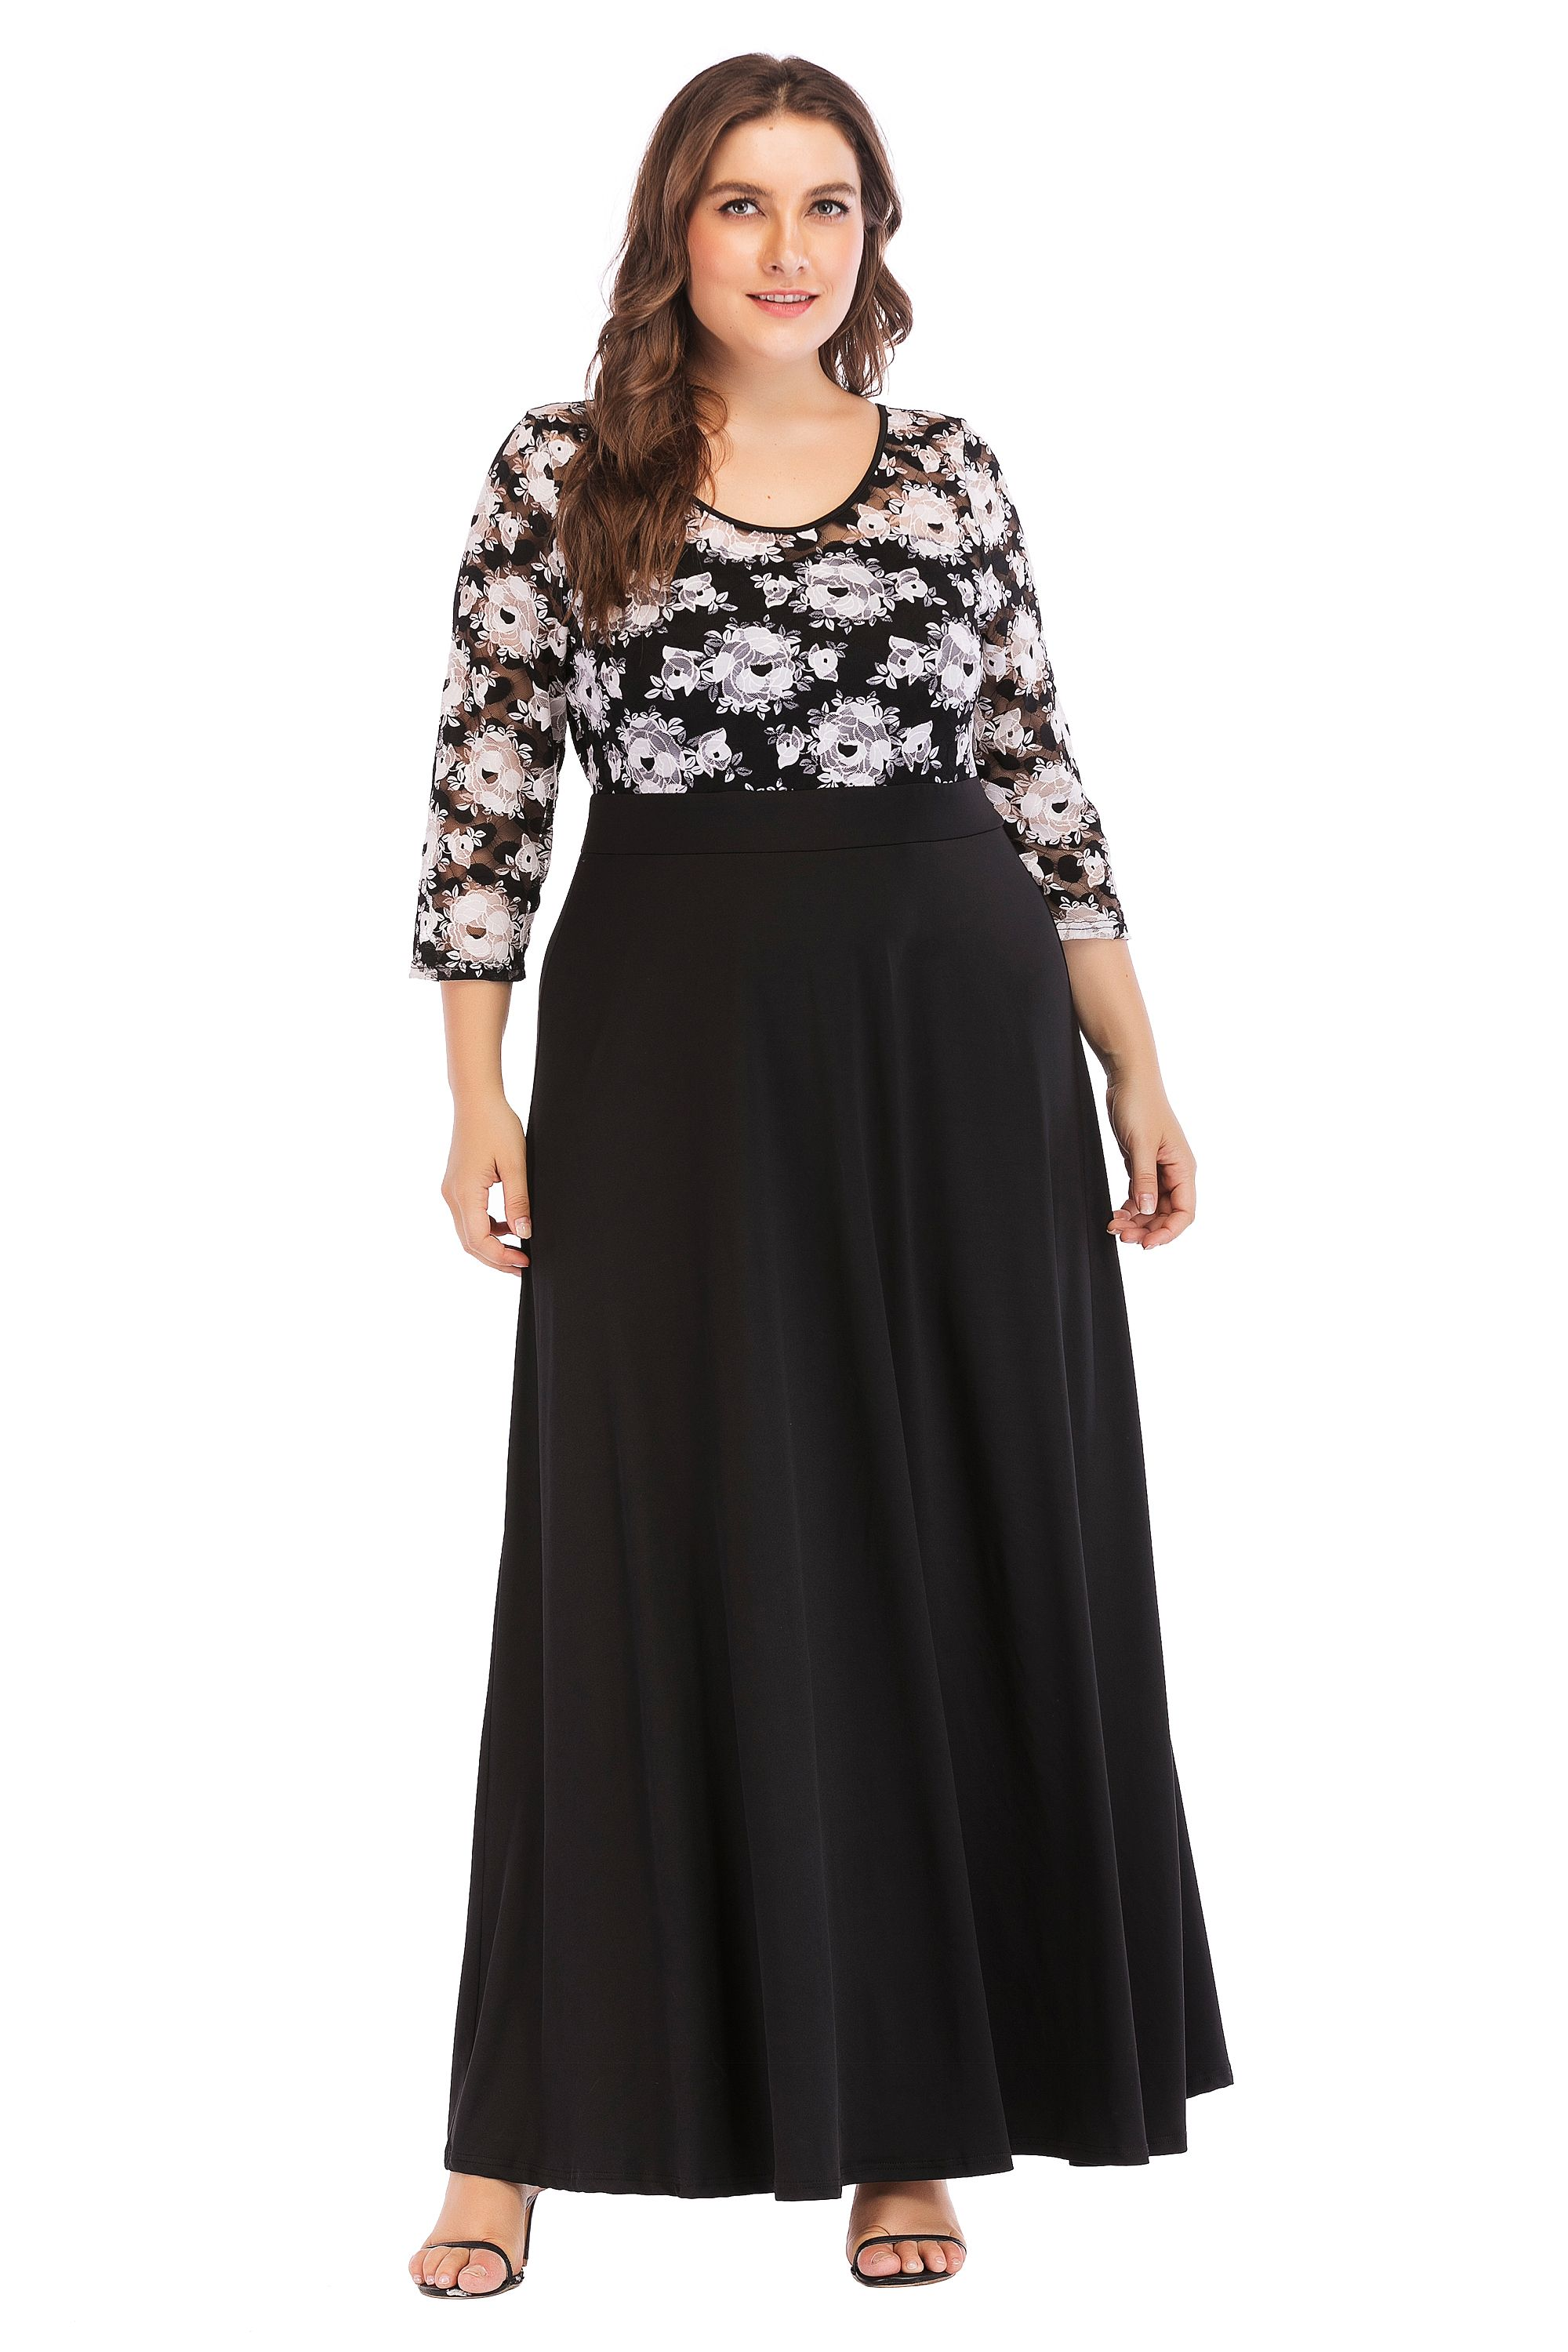 f36a4b3fe4 ESPRLIA Womens Plus Size Fit and Flare Vintage Party Maxi Dress ...